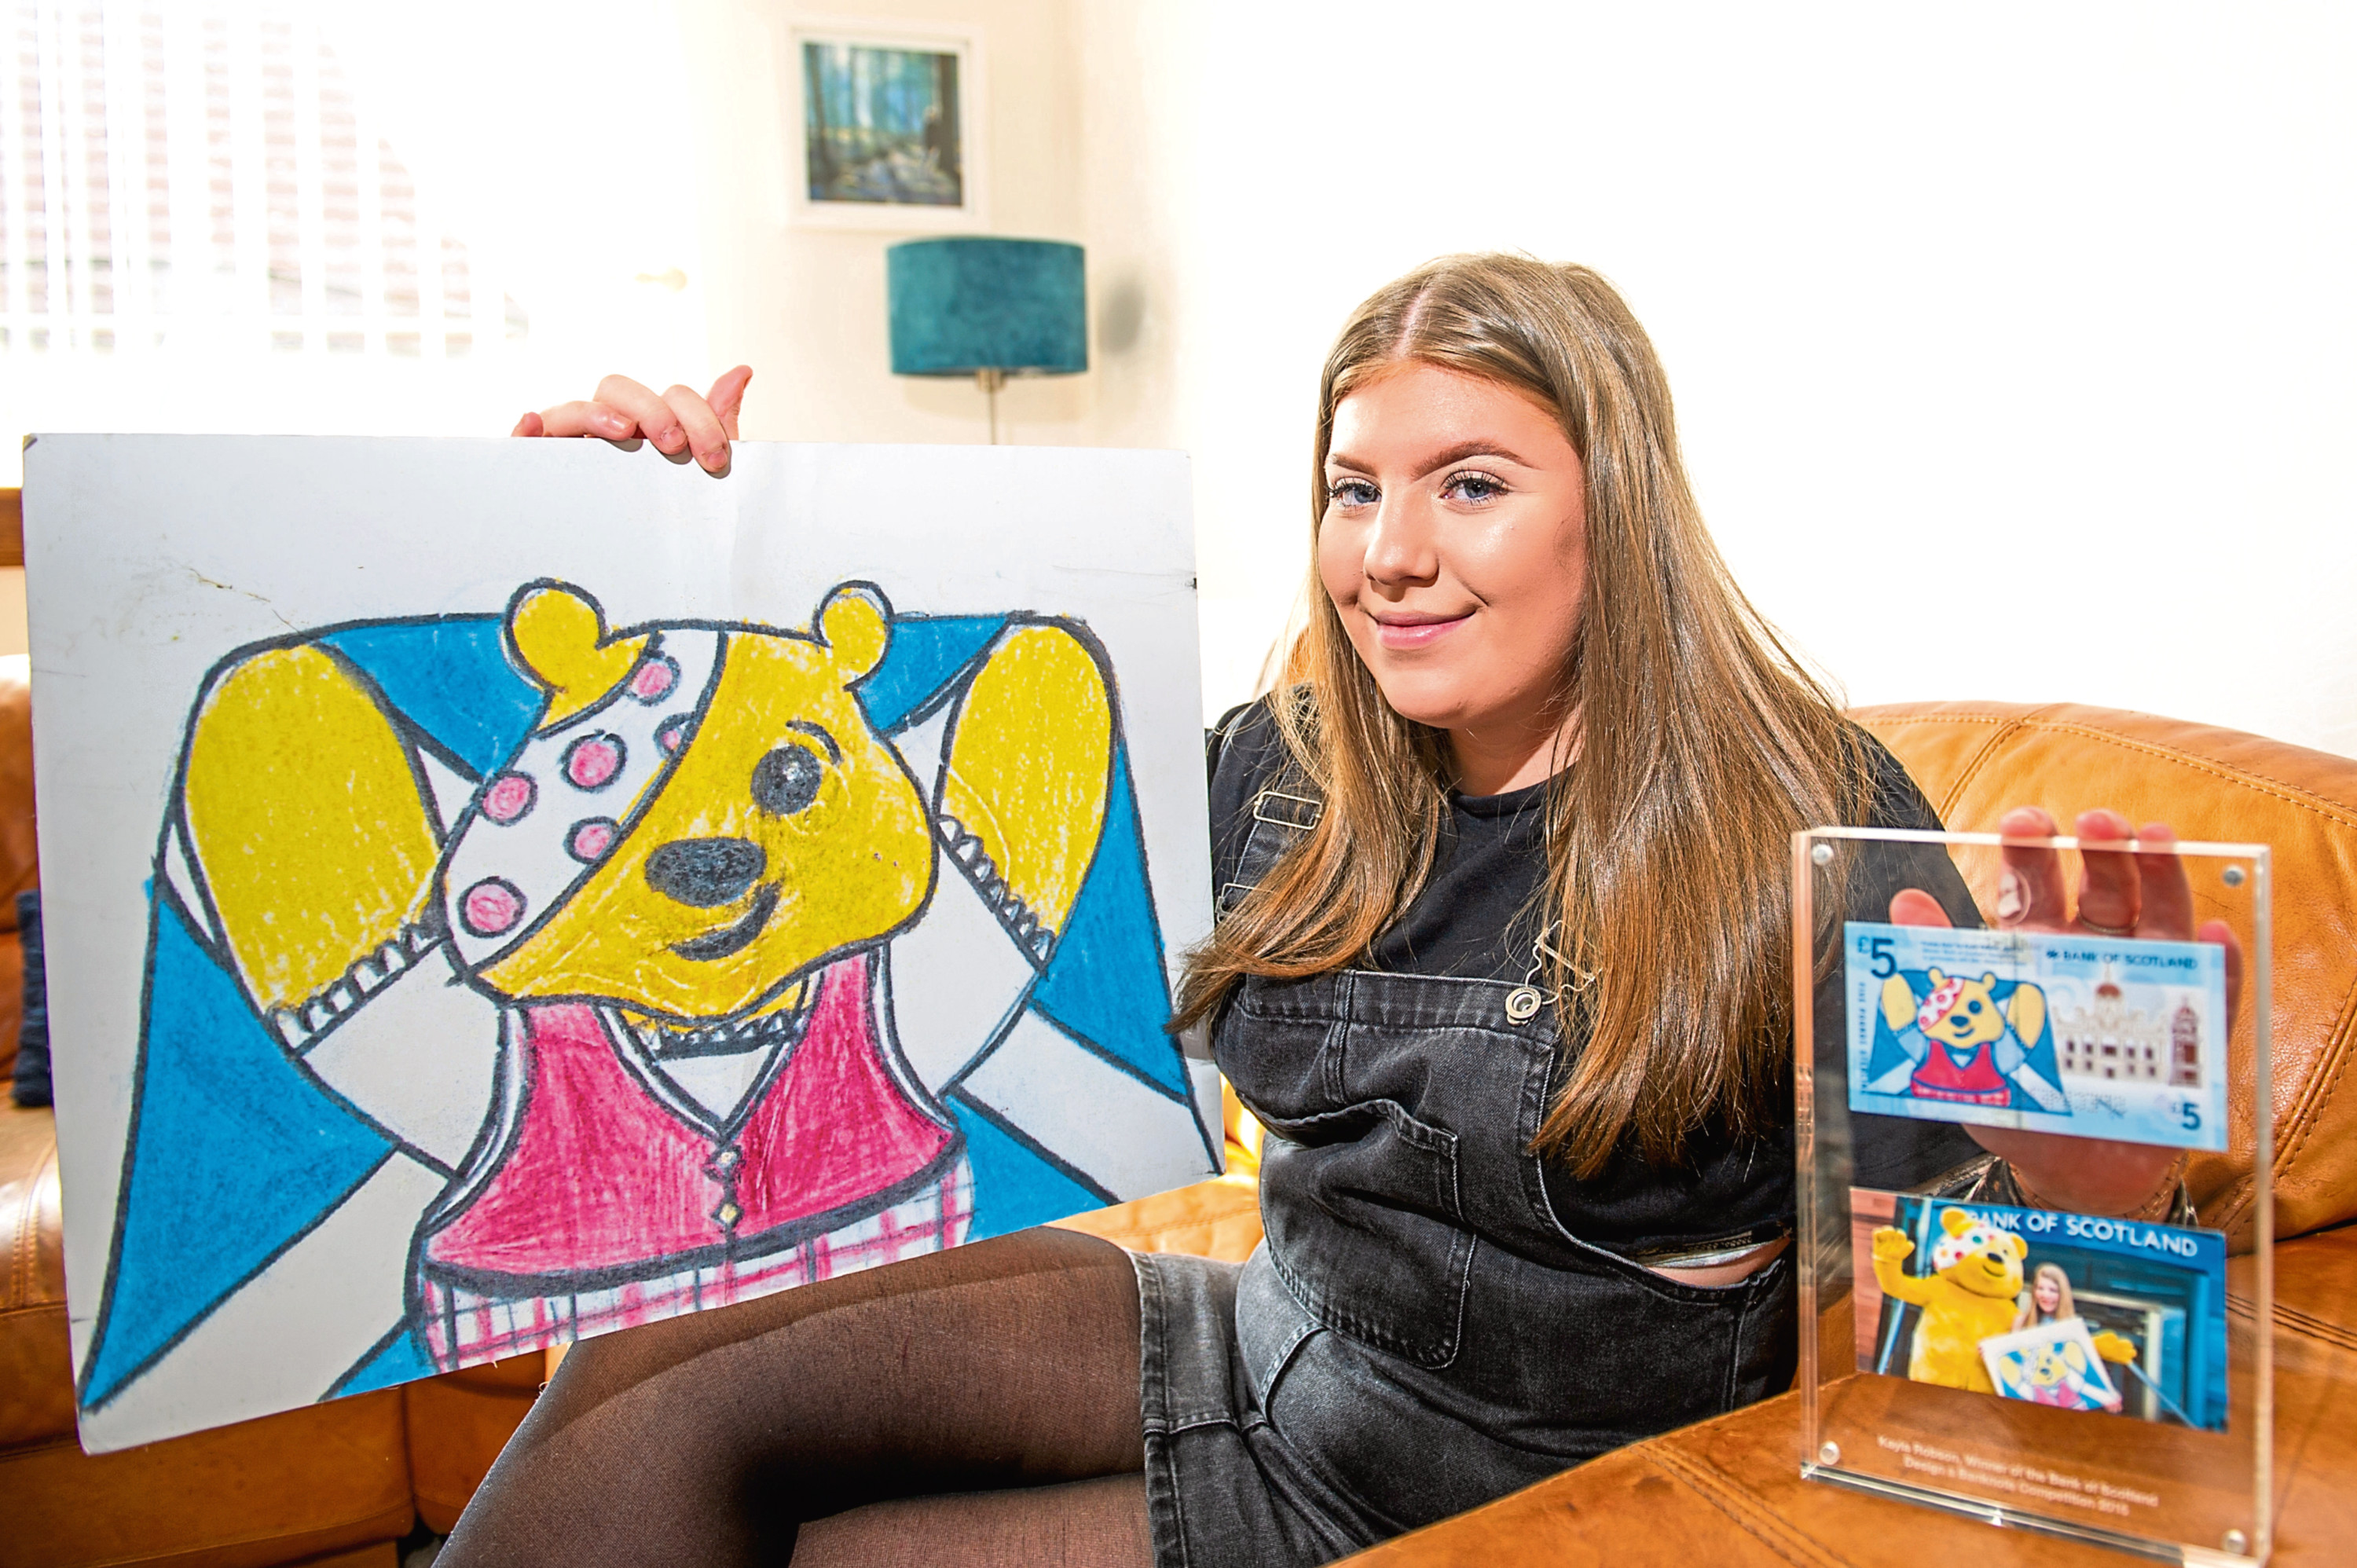 Kayla Robson, who designed the sought after Children in Need banknote when she was 12